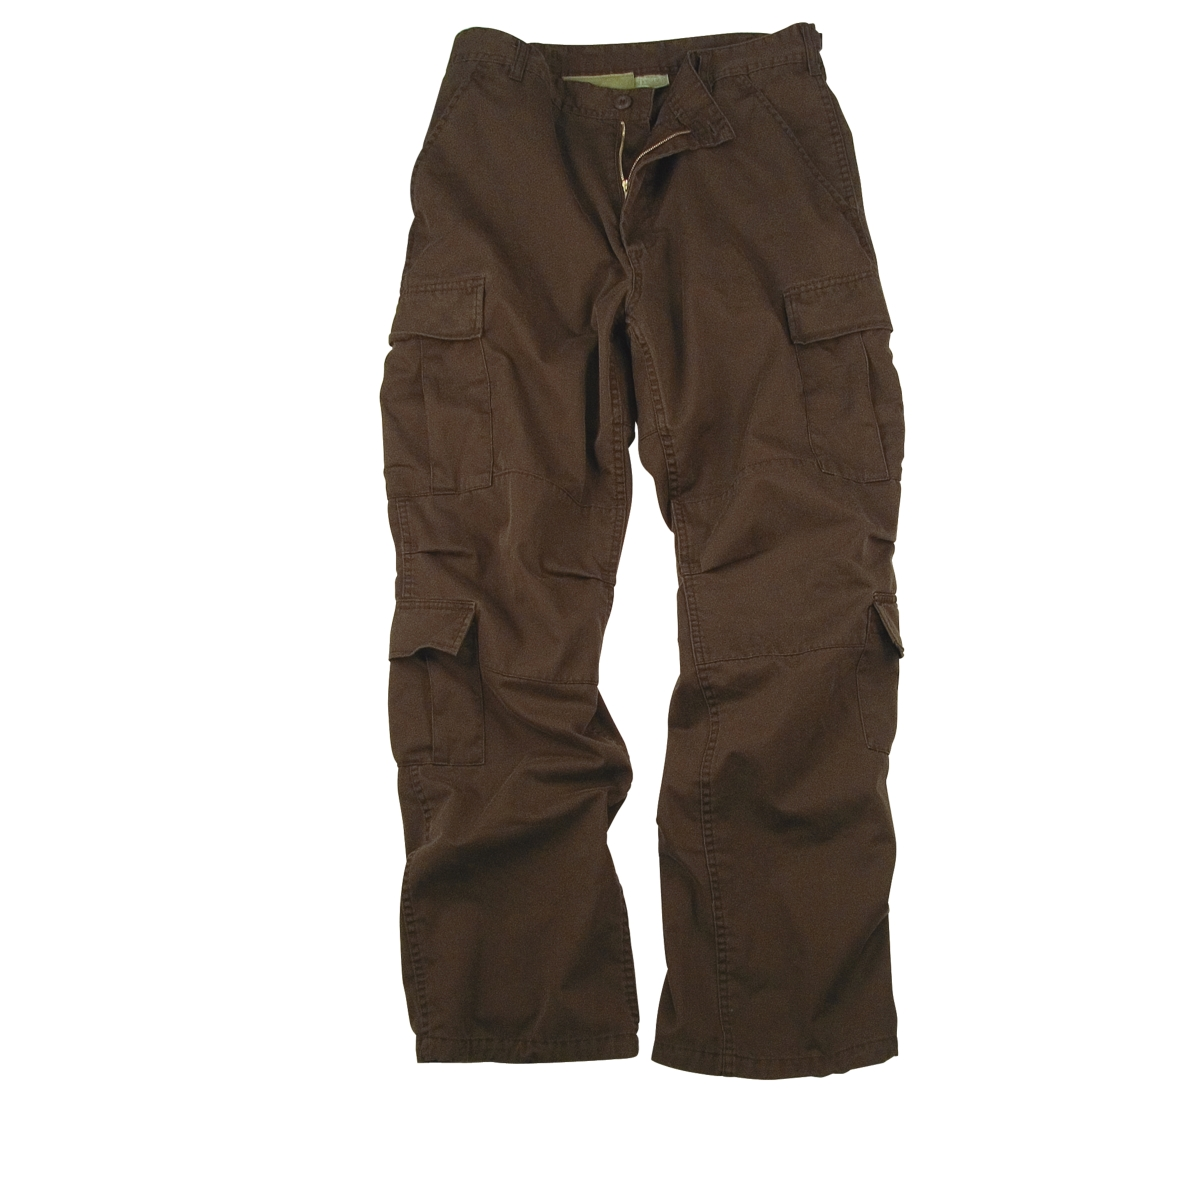 Chocolate Brown Vintage Paratrooper Cargo Pants - Walmart.com